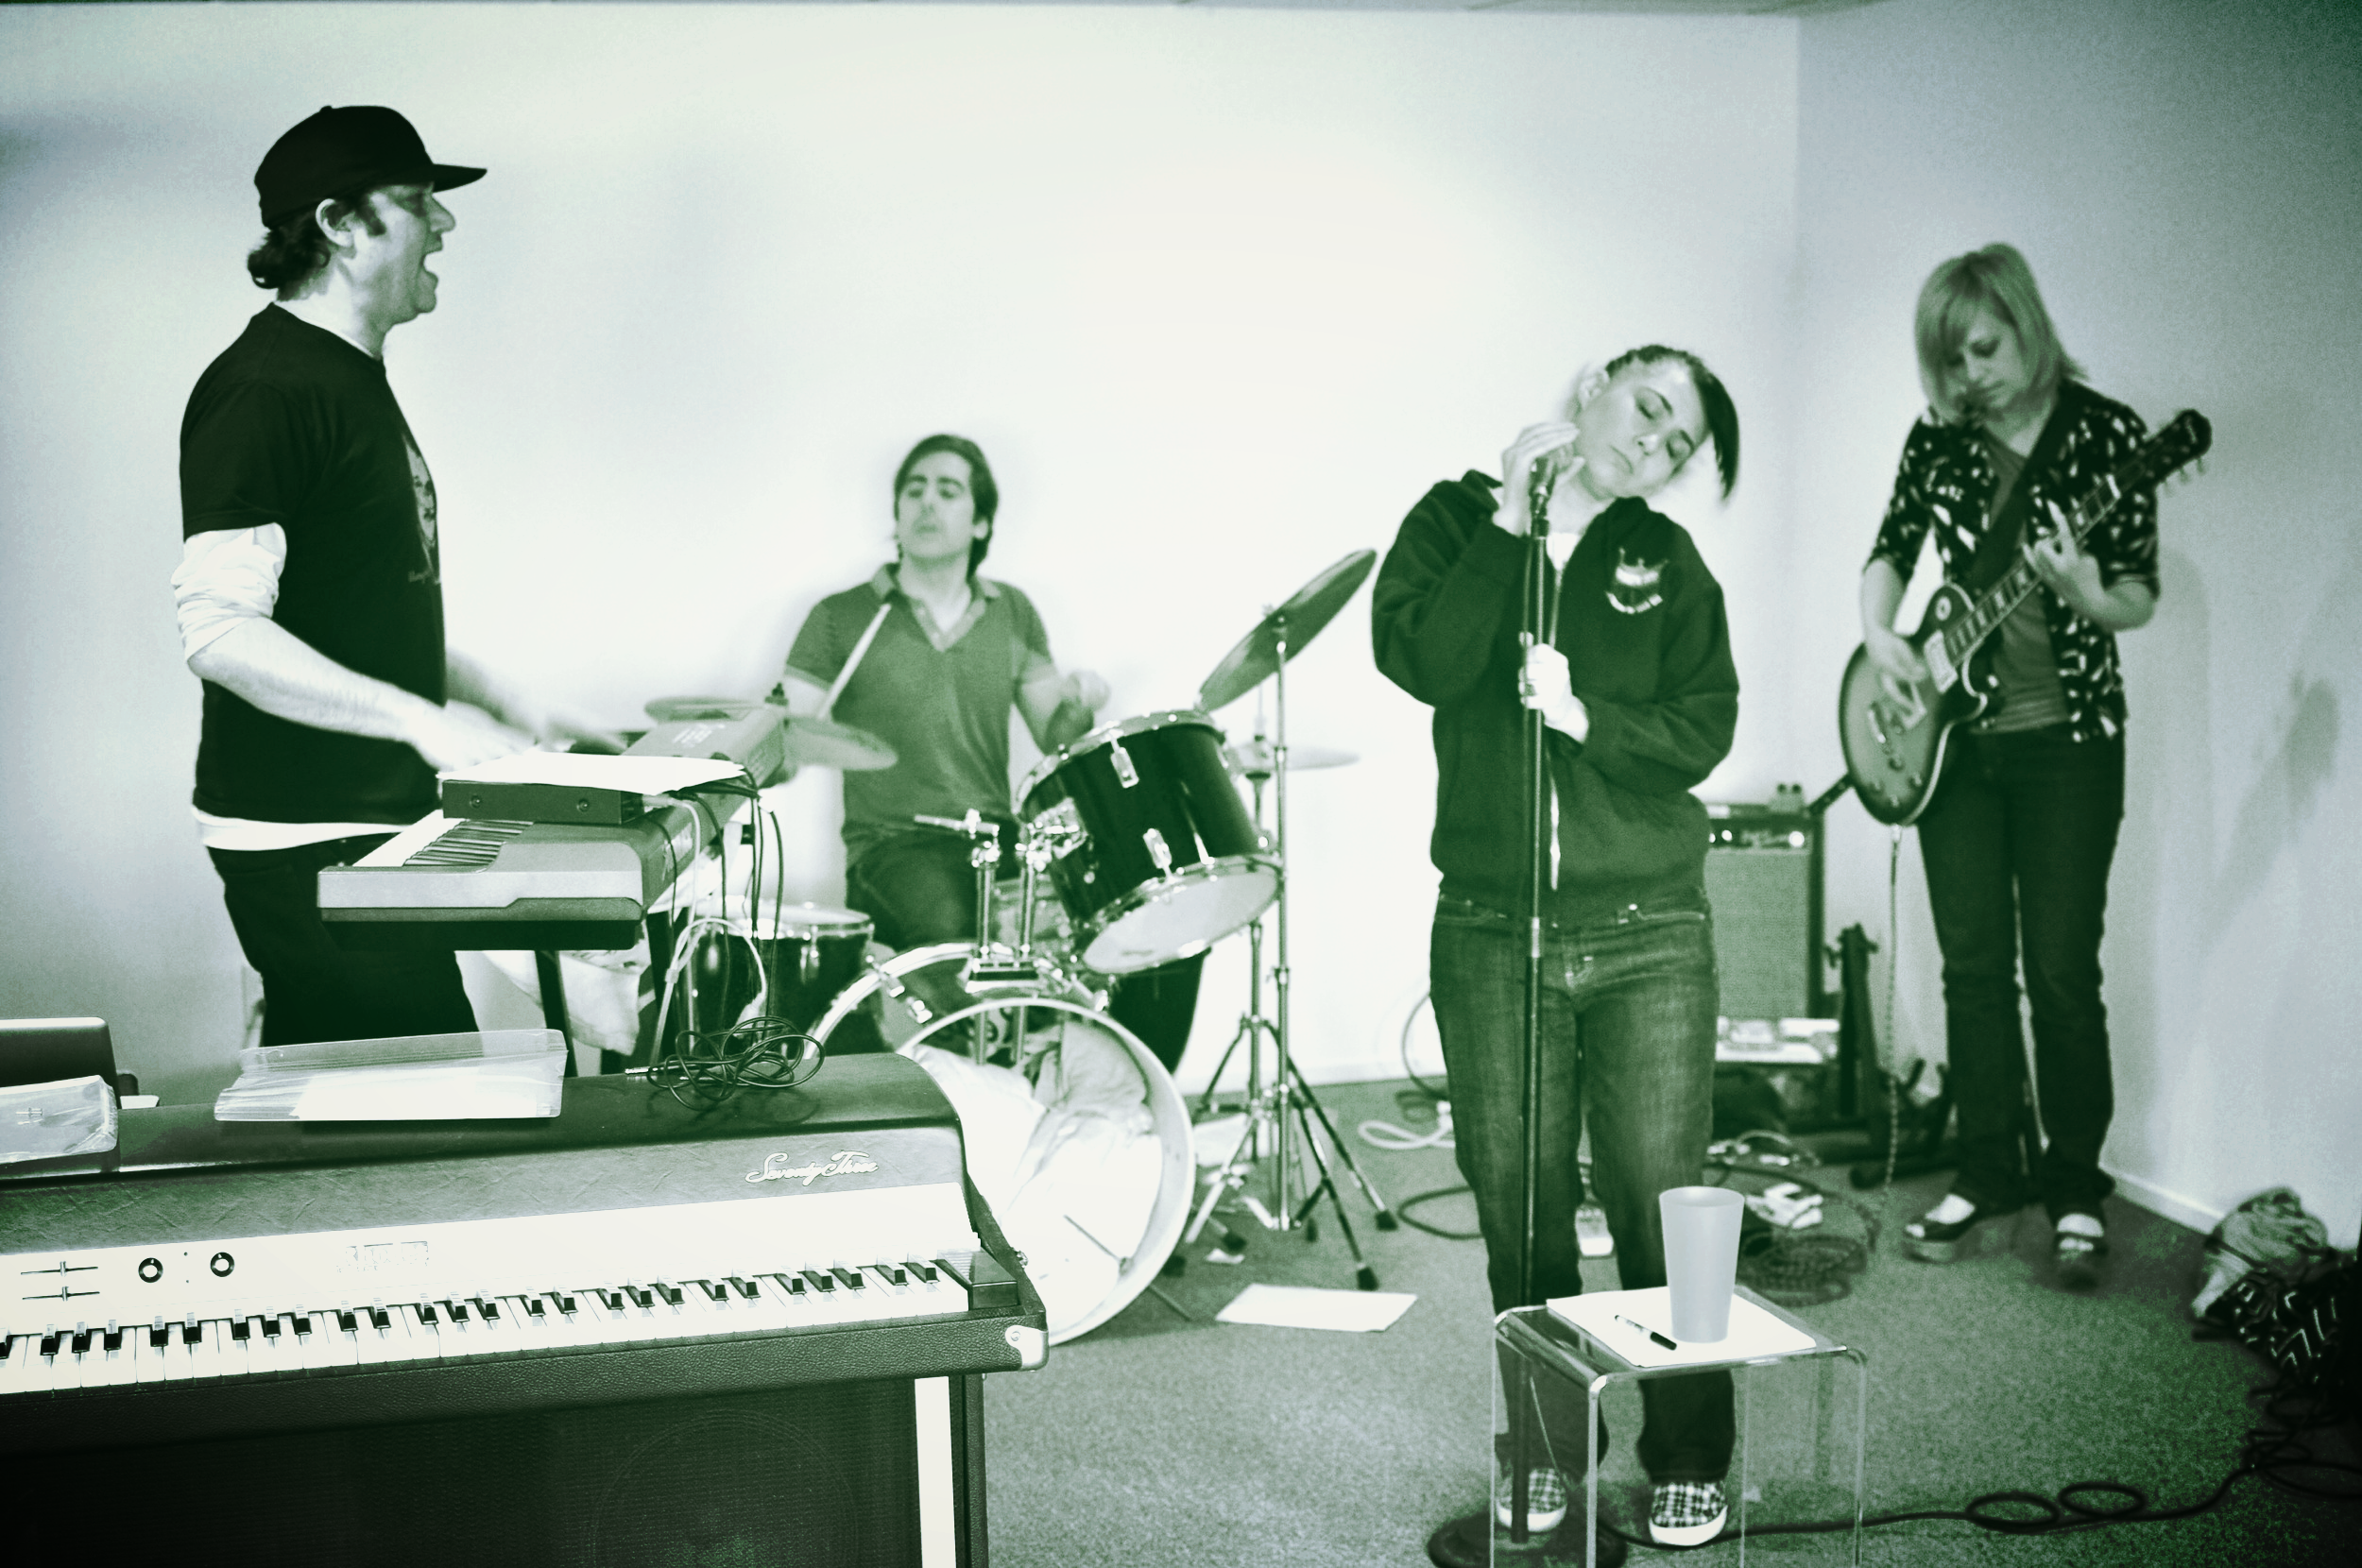 Rehearsing in Kathleen's basement before Kathi Wilcox moved to NYC.